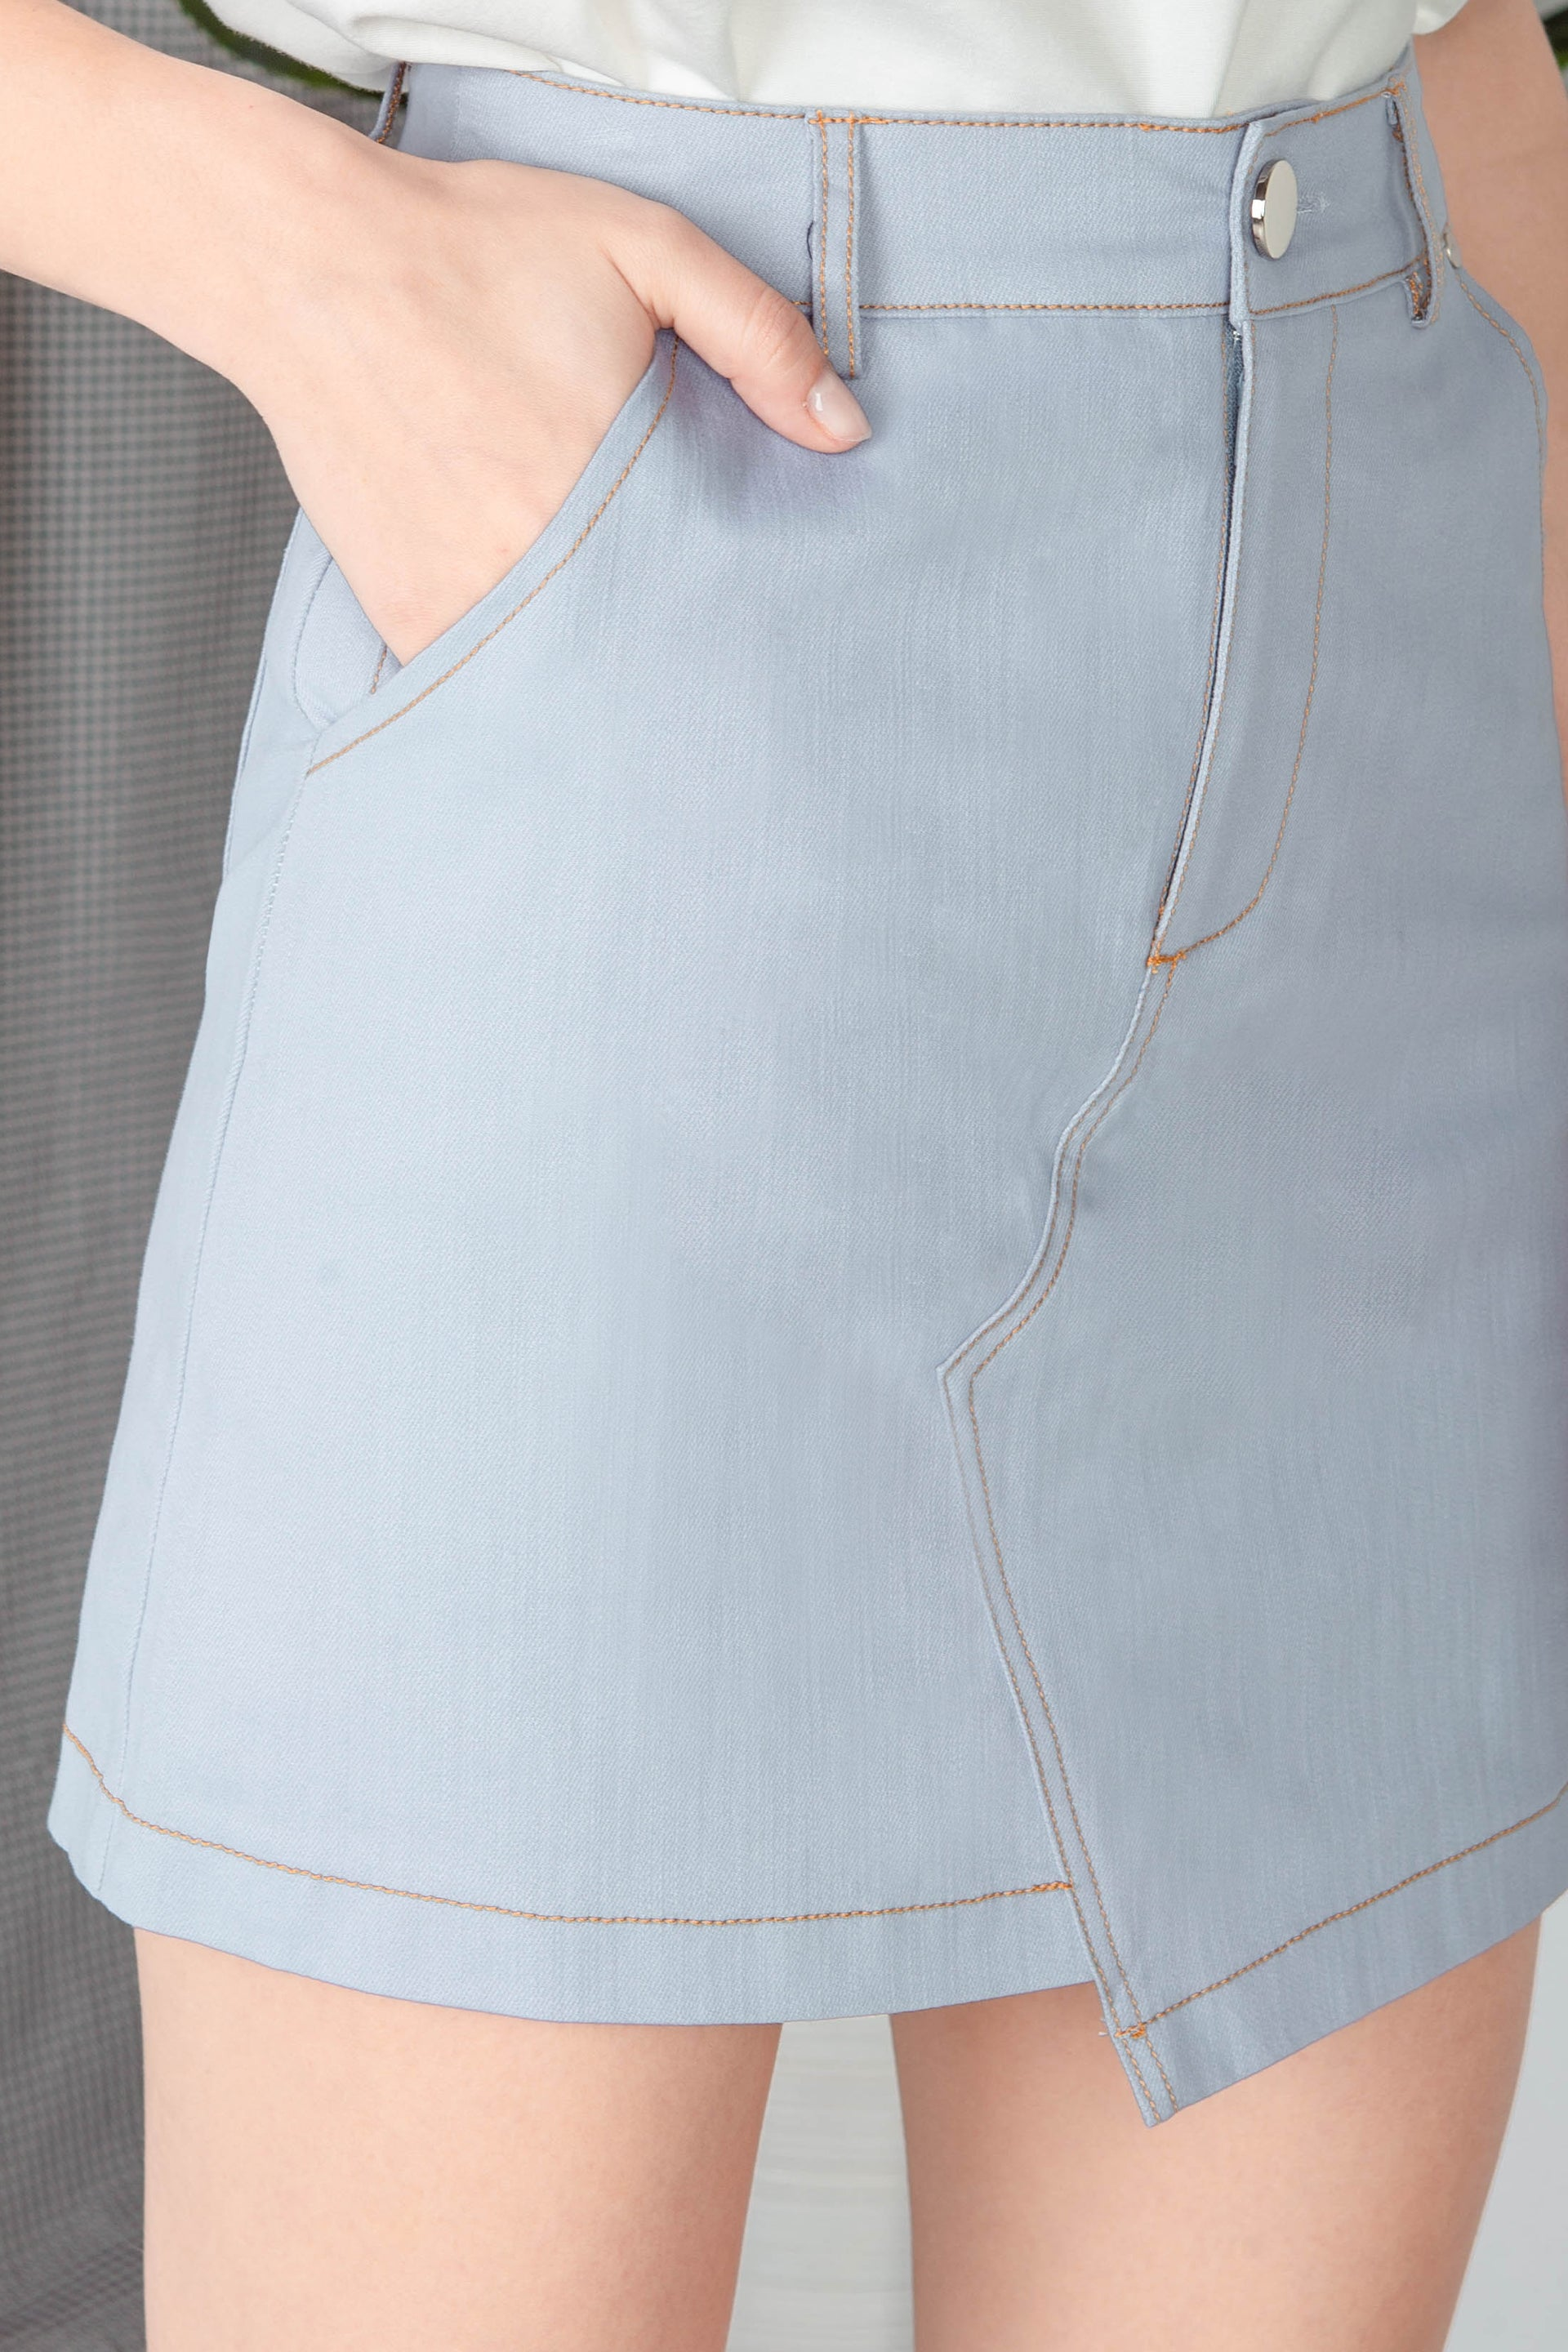 Backorder* Charleigh Denim Skirt (Blue)